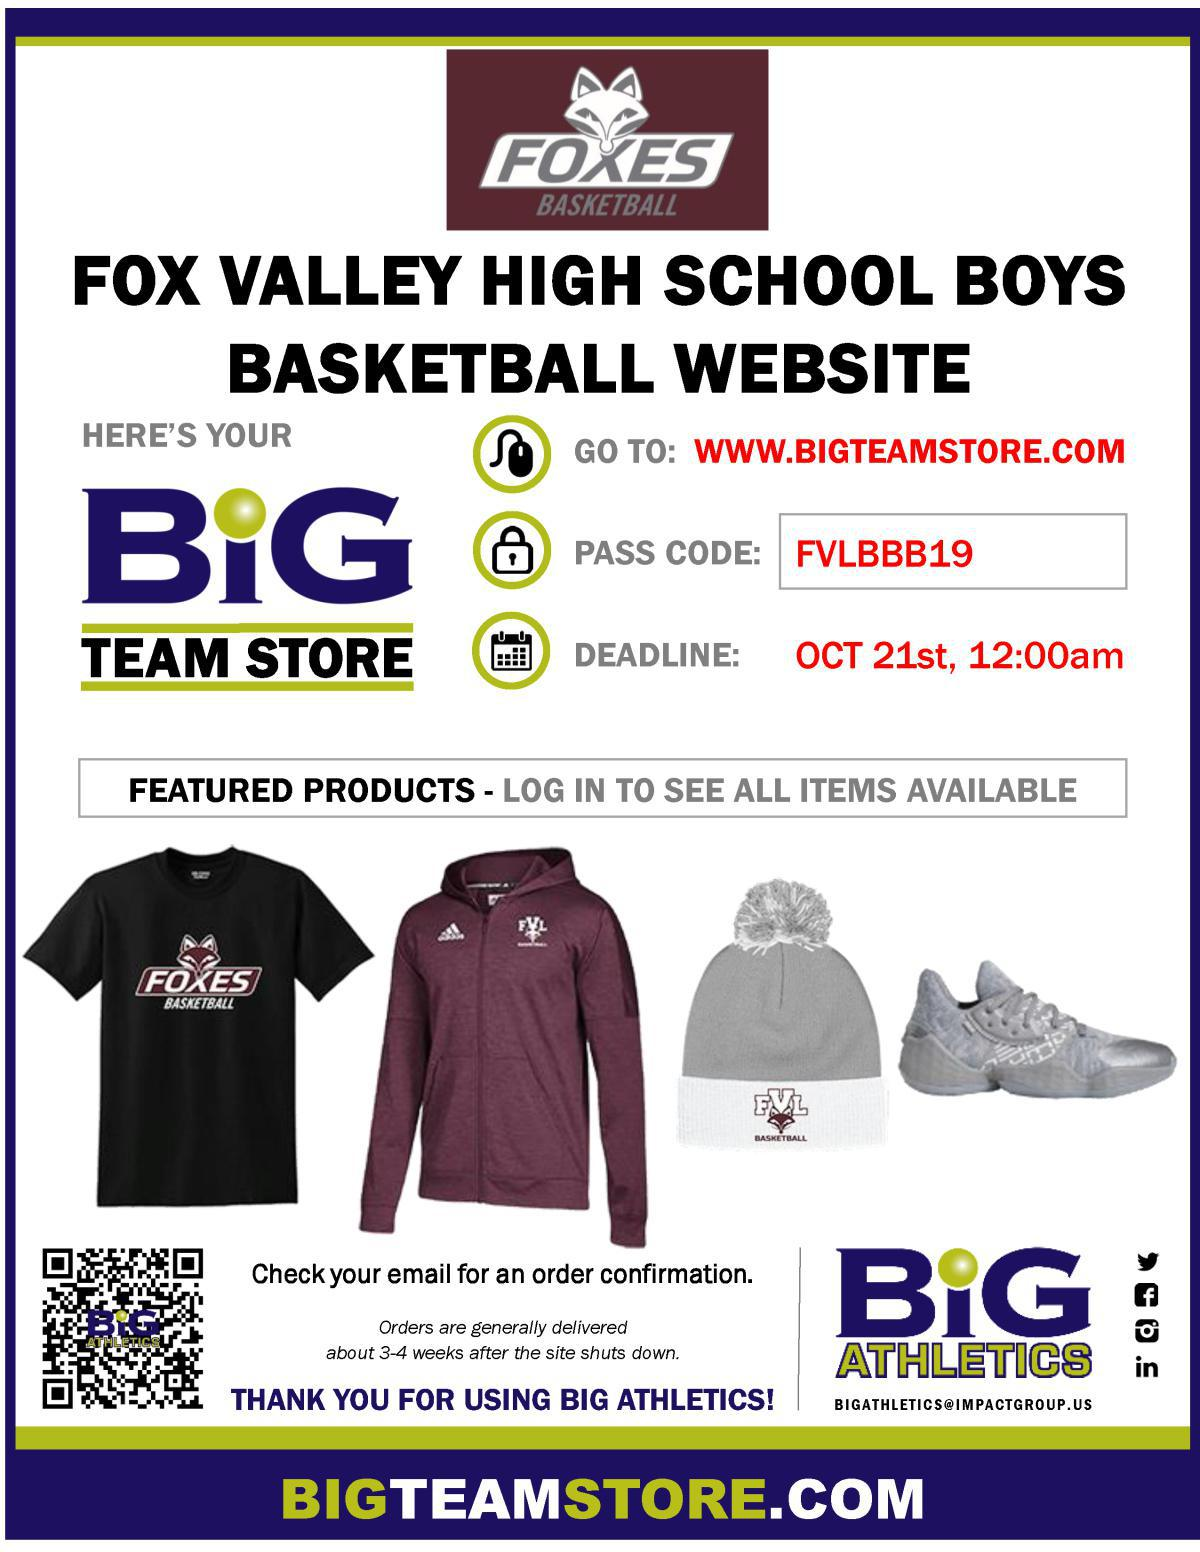 Due Oct 21 - Basketball Online Store